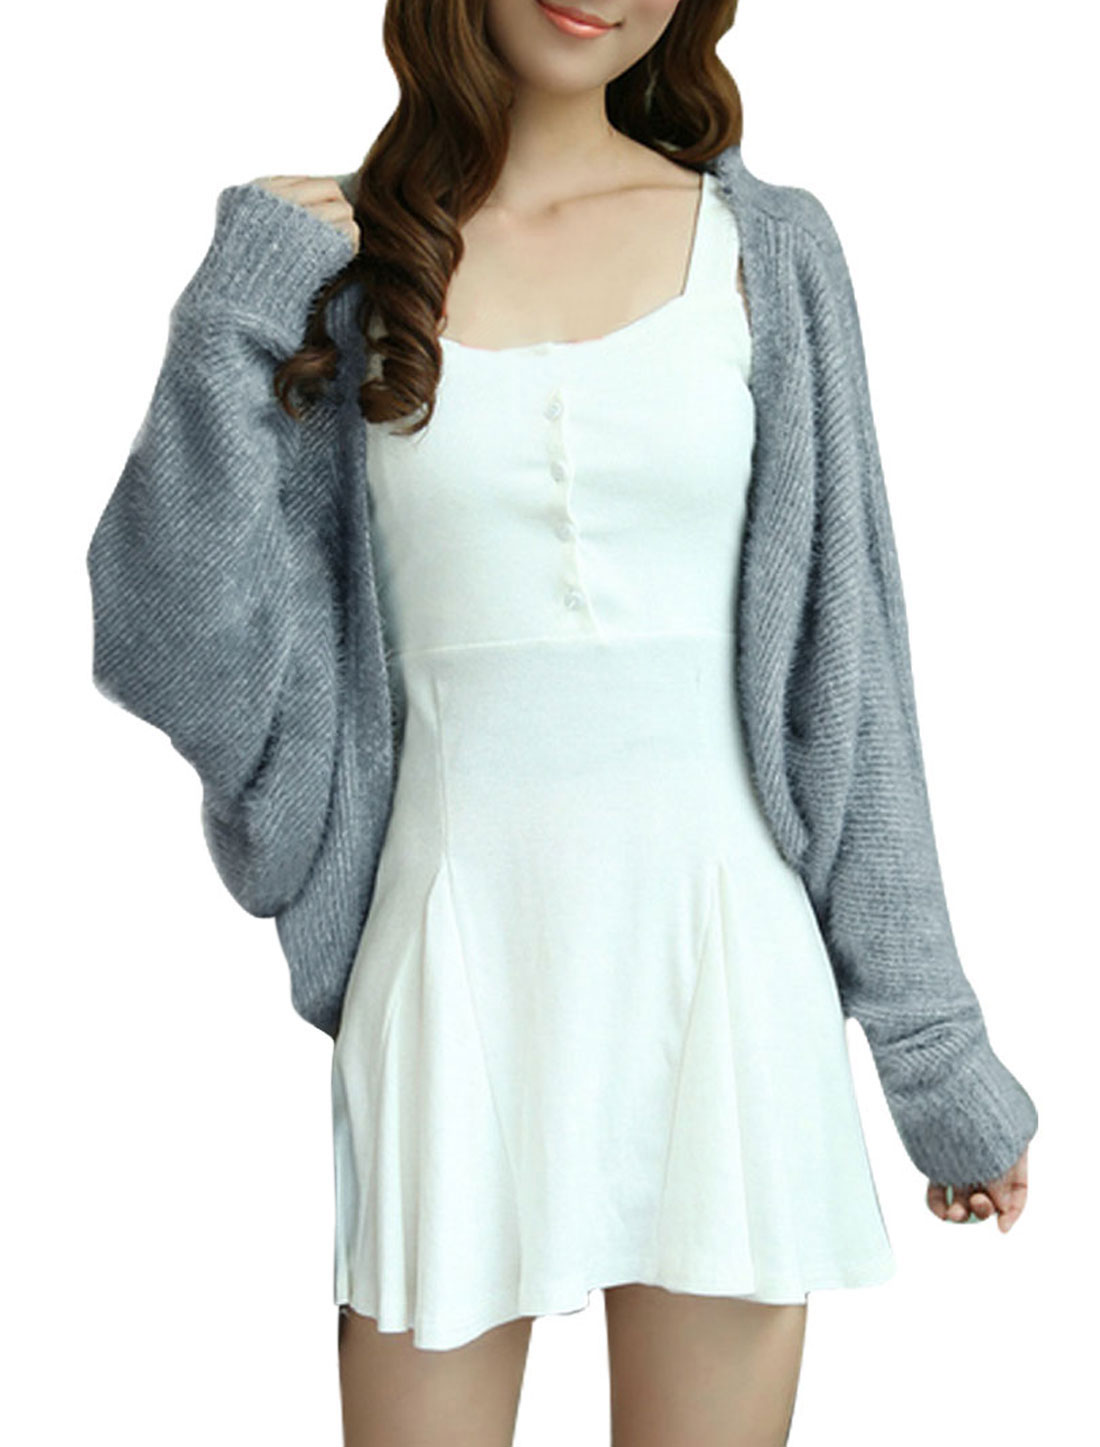 Lady Gray Dolman Sleeved Front Opening Casual Knitted Sweater S